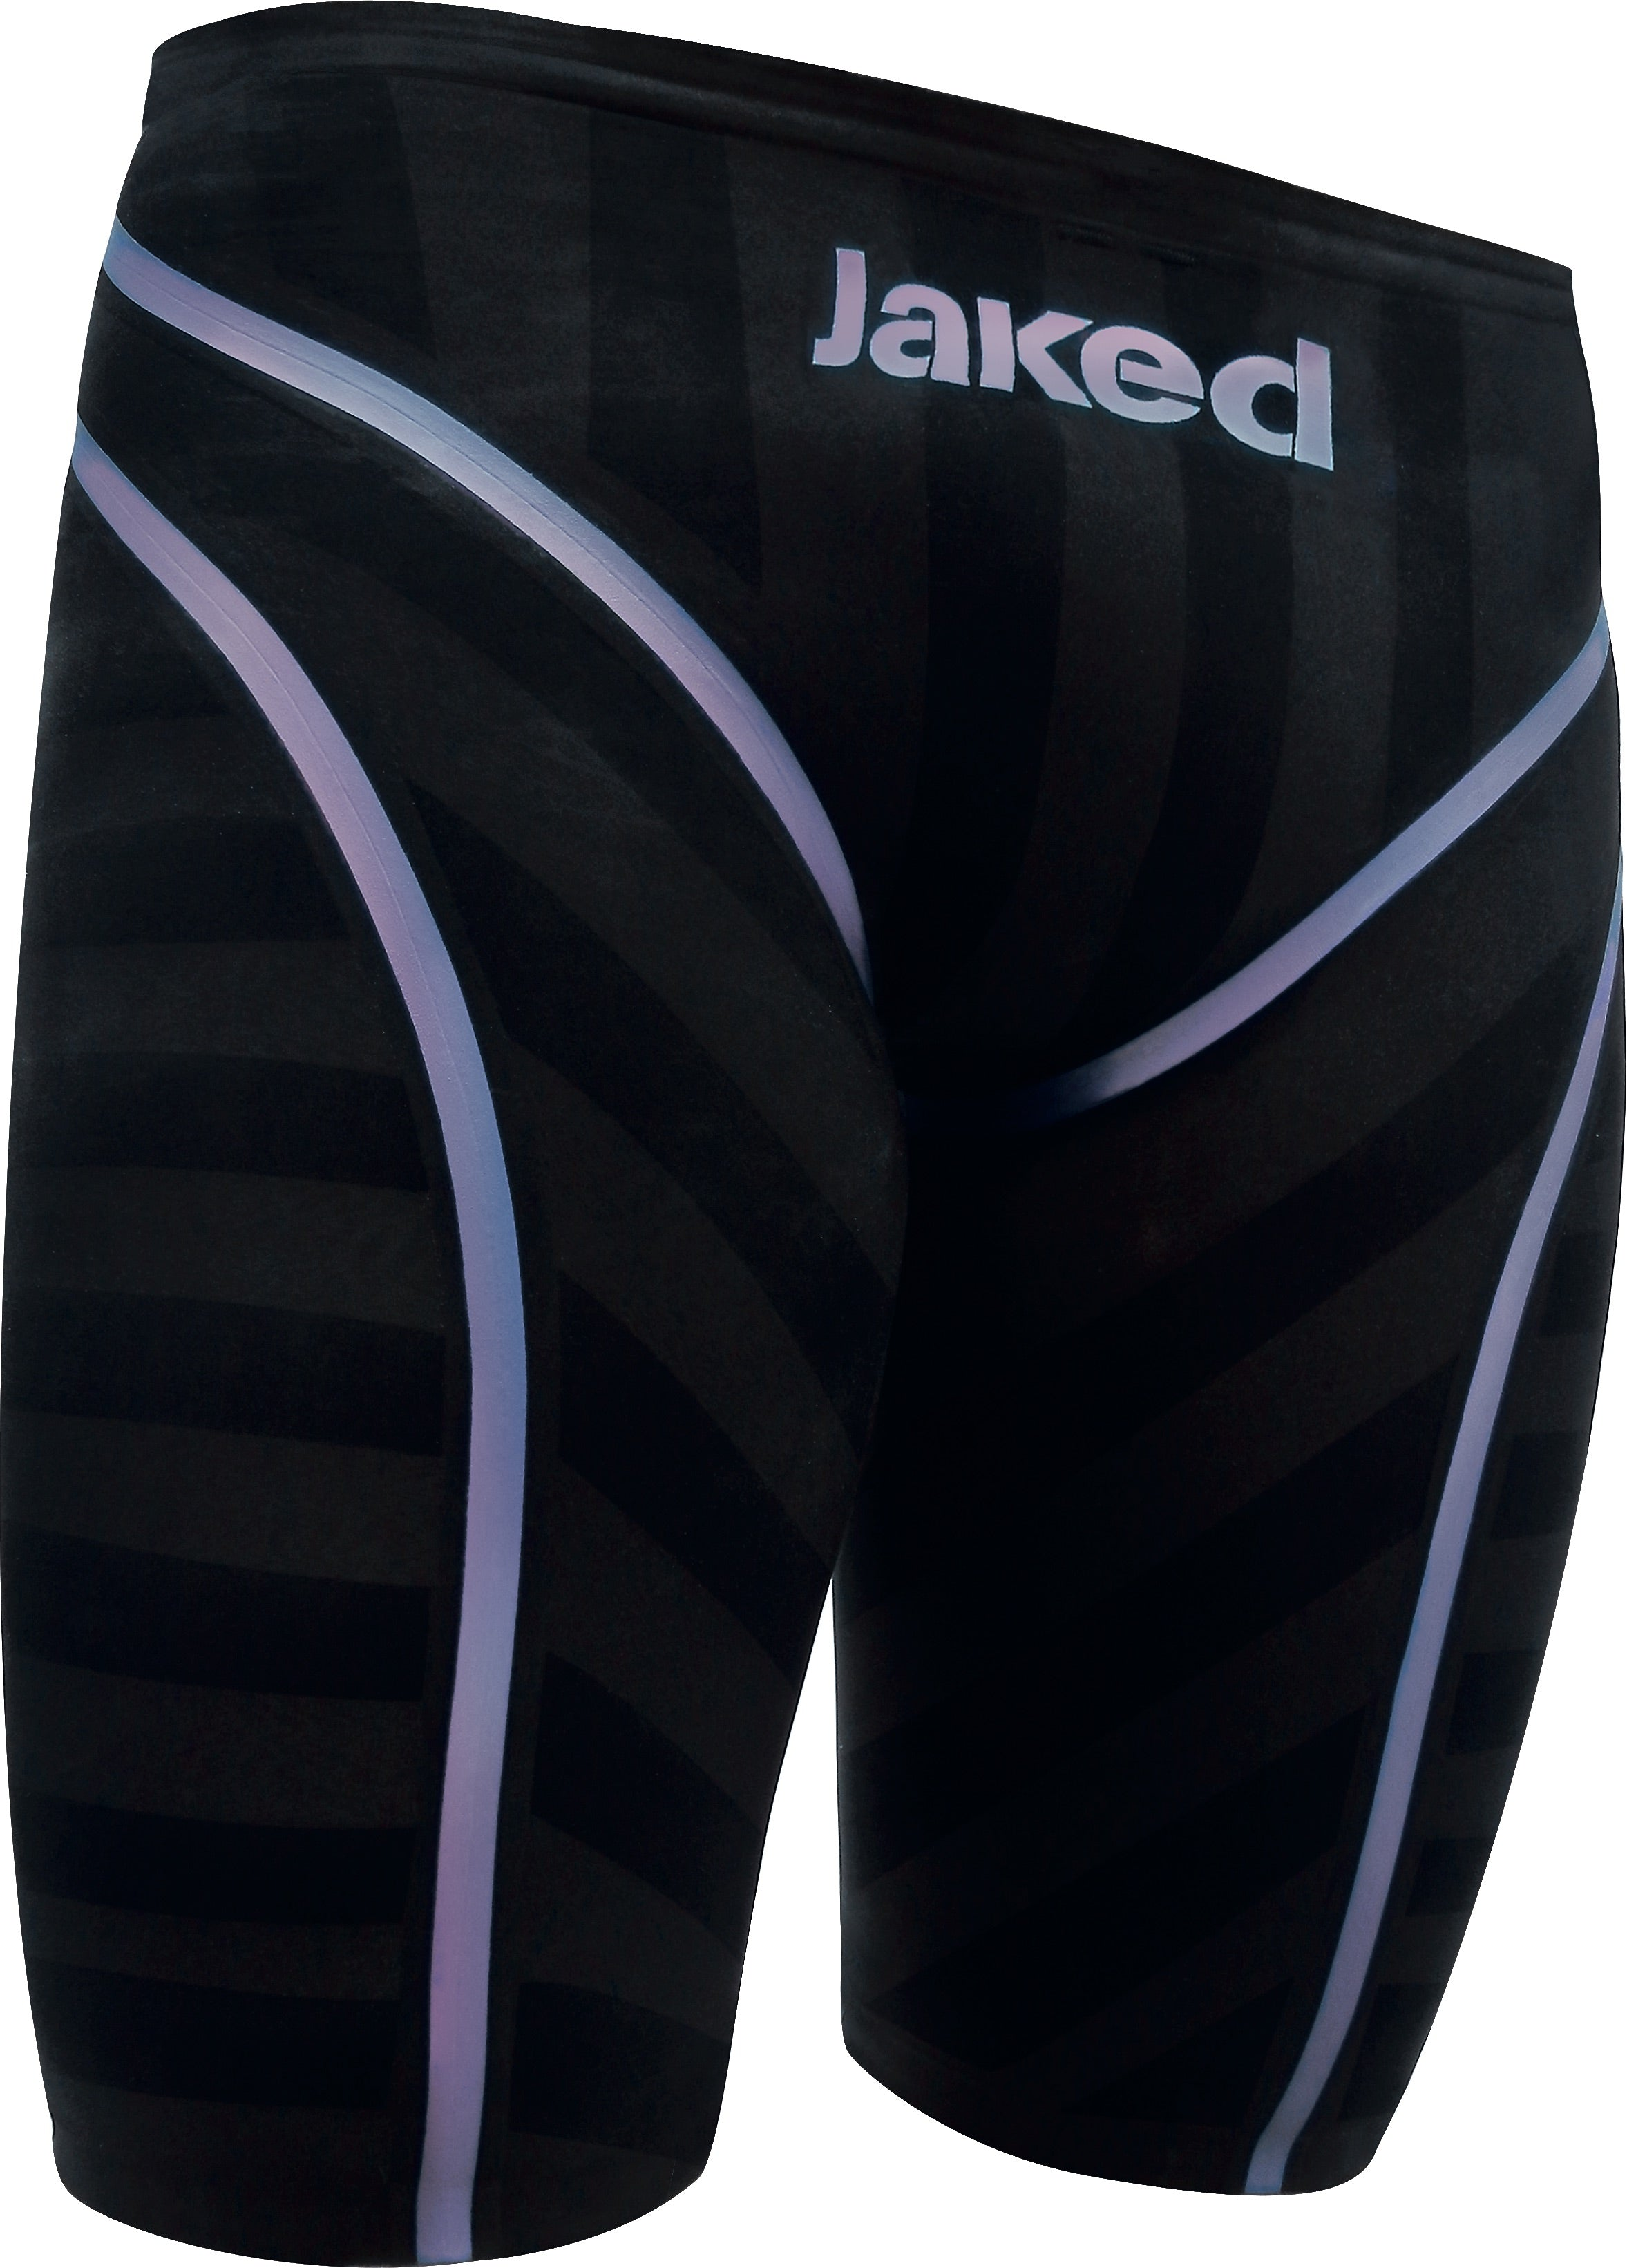 Men's Competition J KOMP Jammer Swimsuit, Jaked US Store